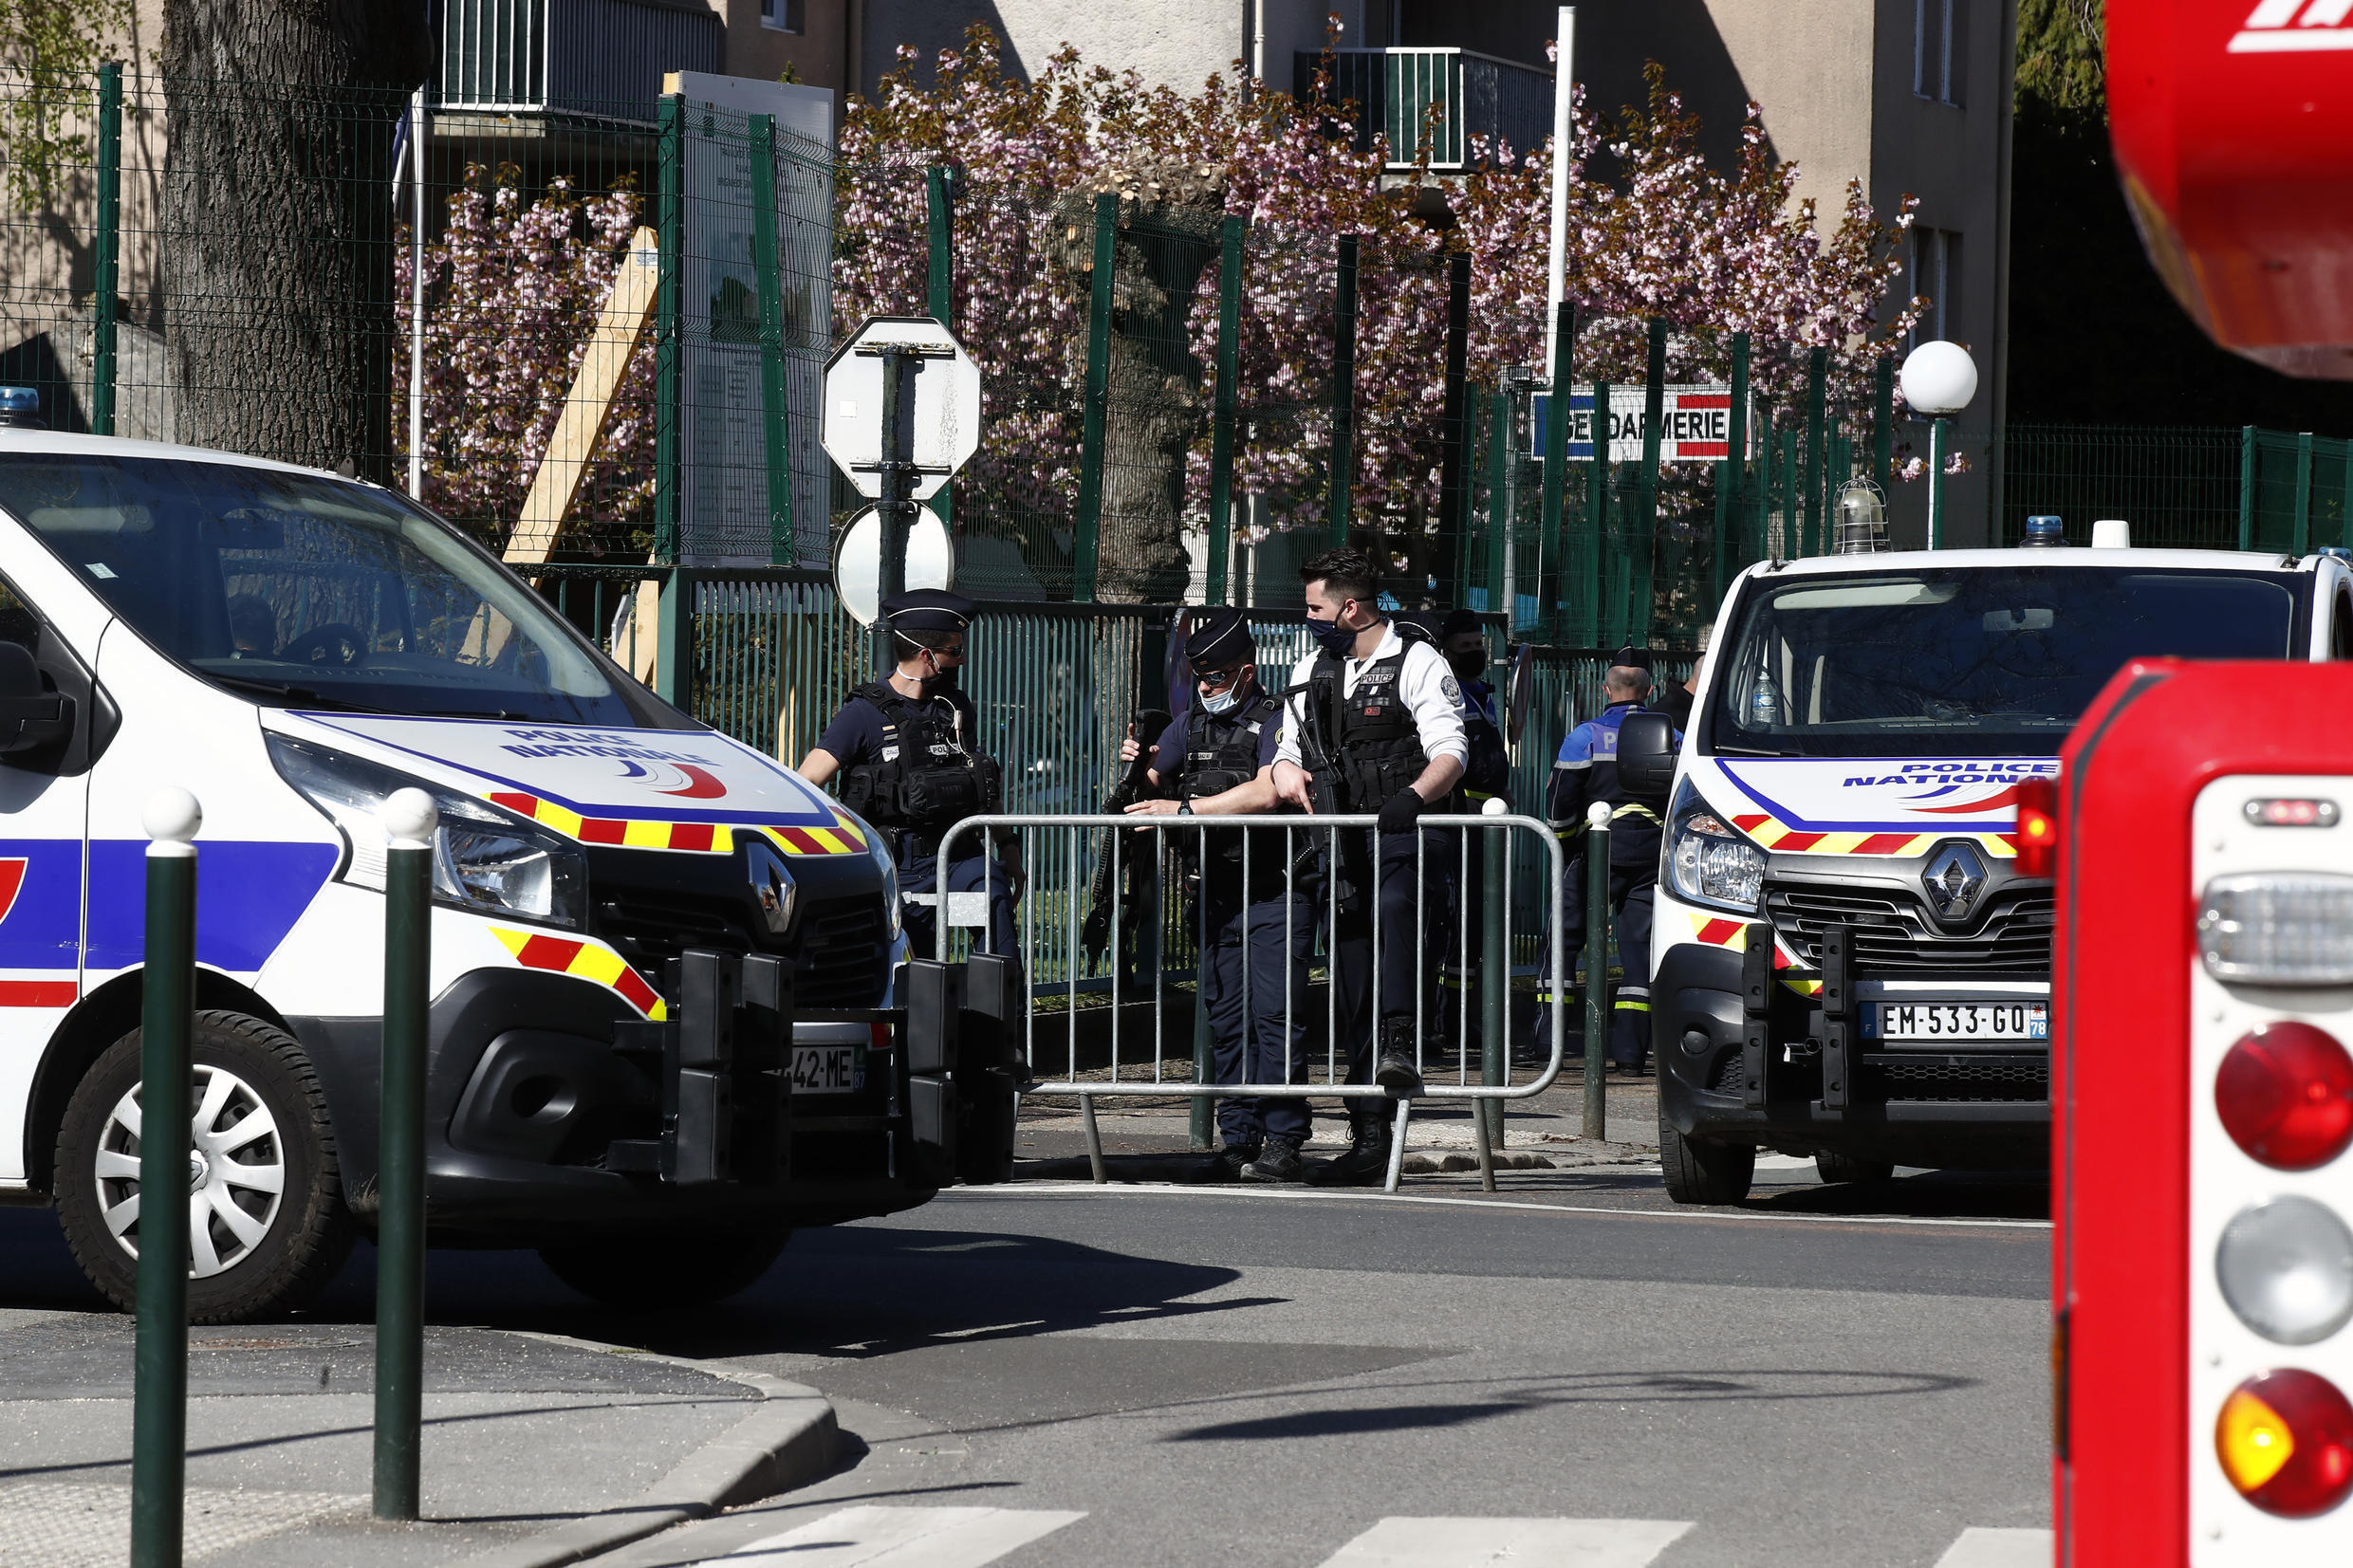 france rambouillet attaque police